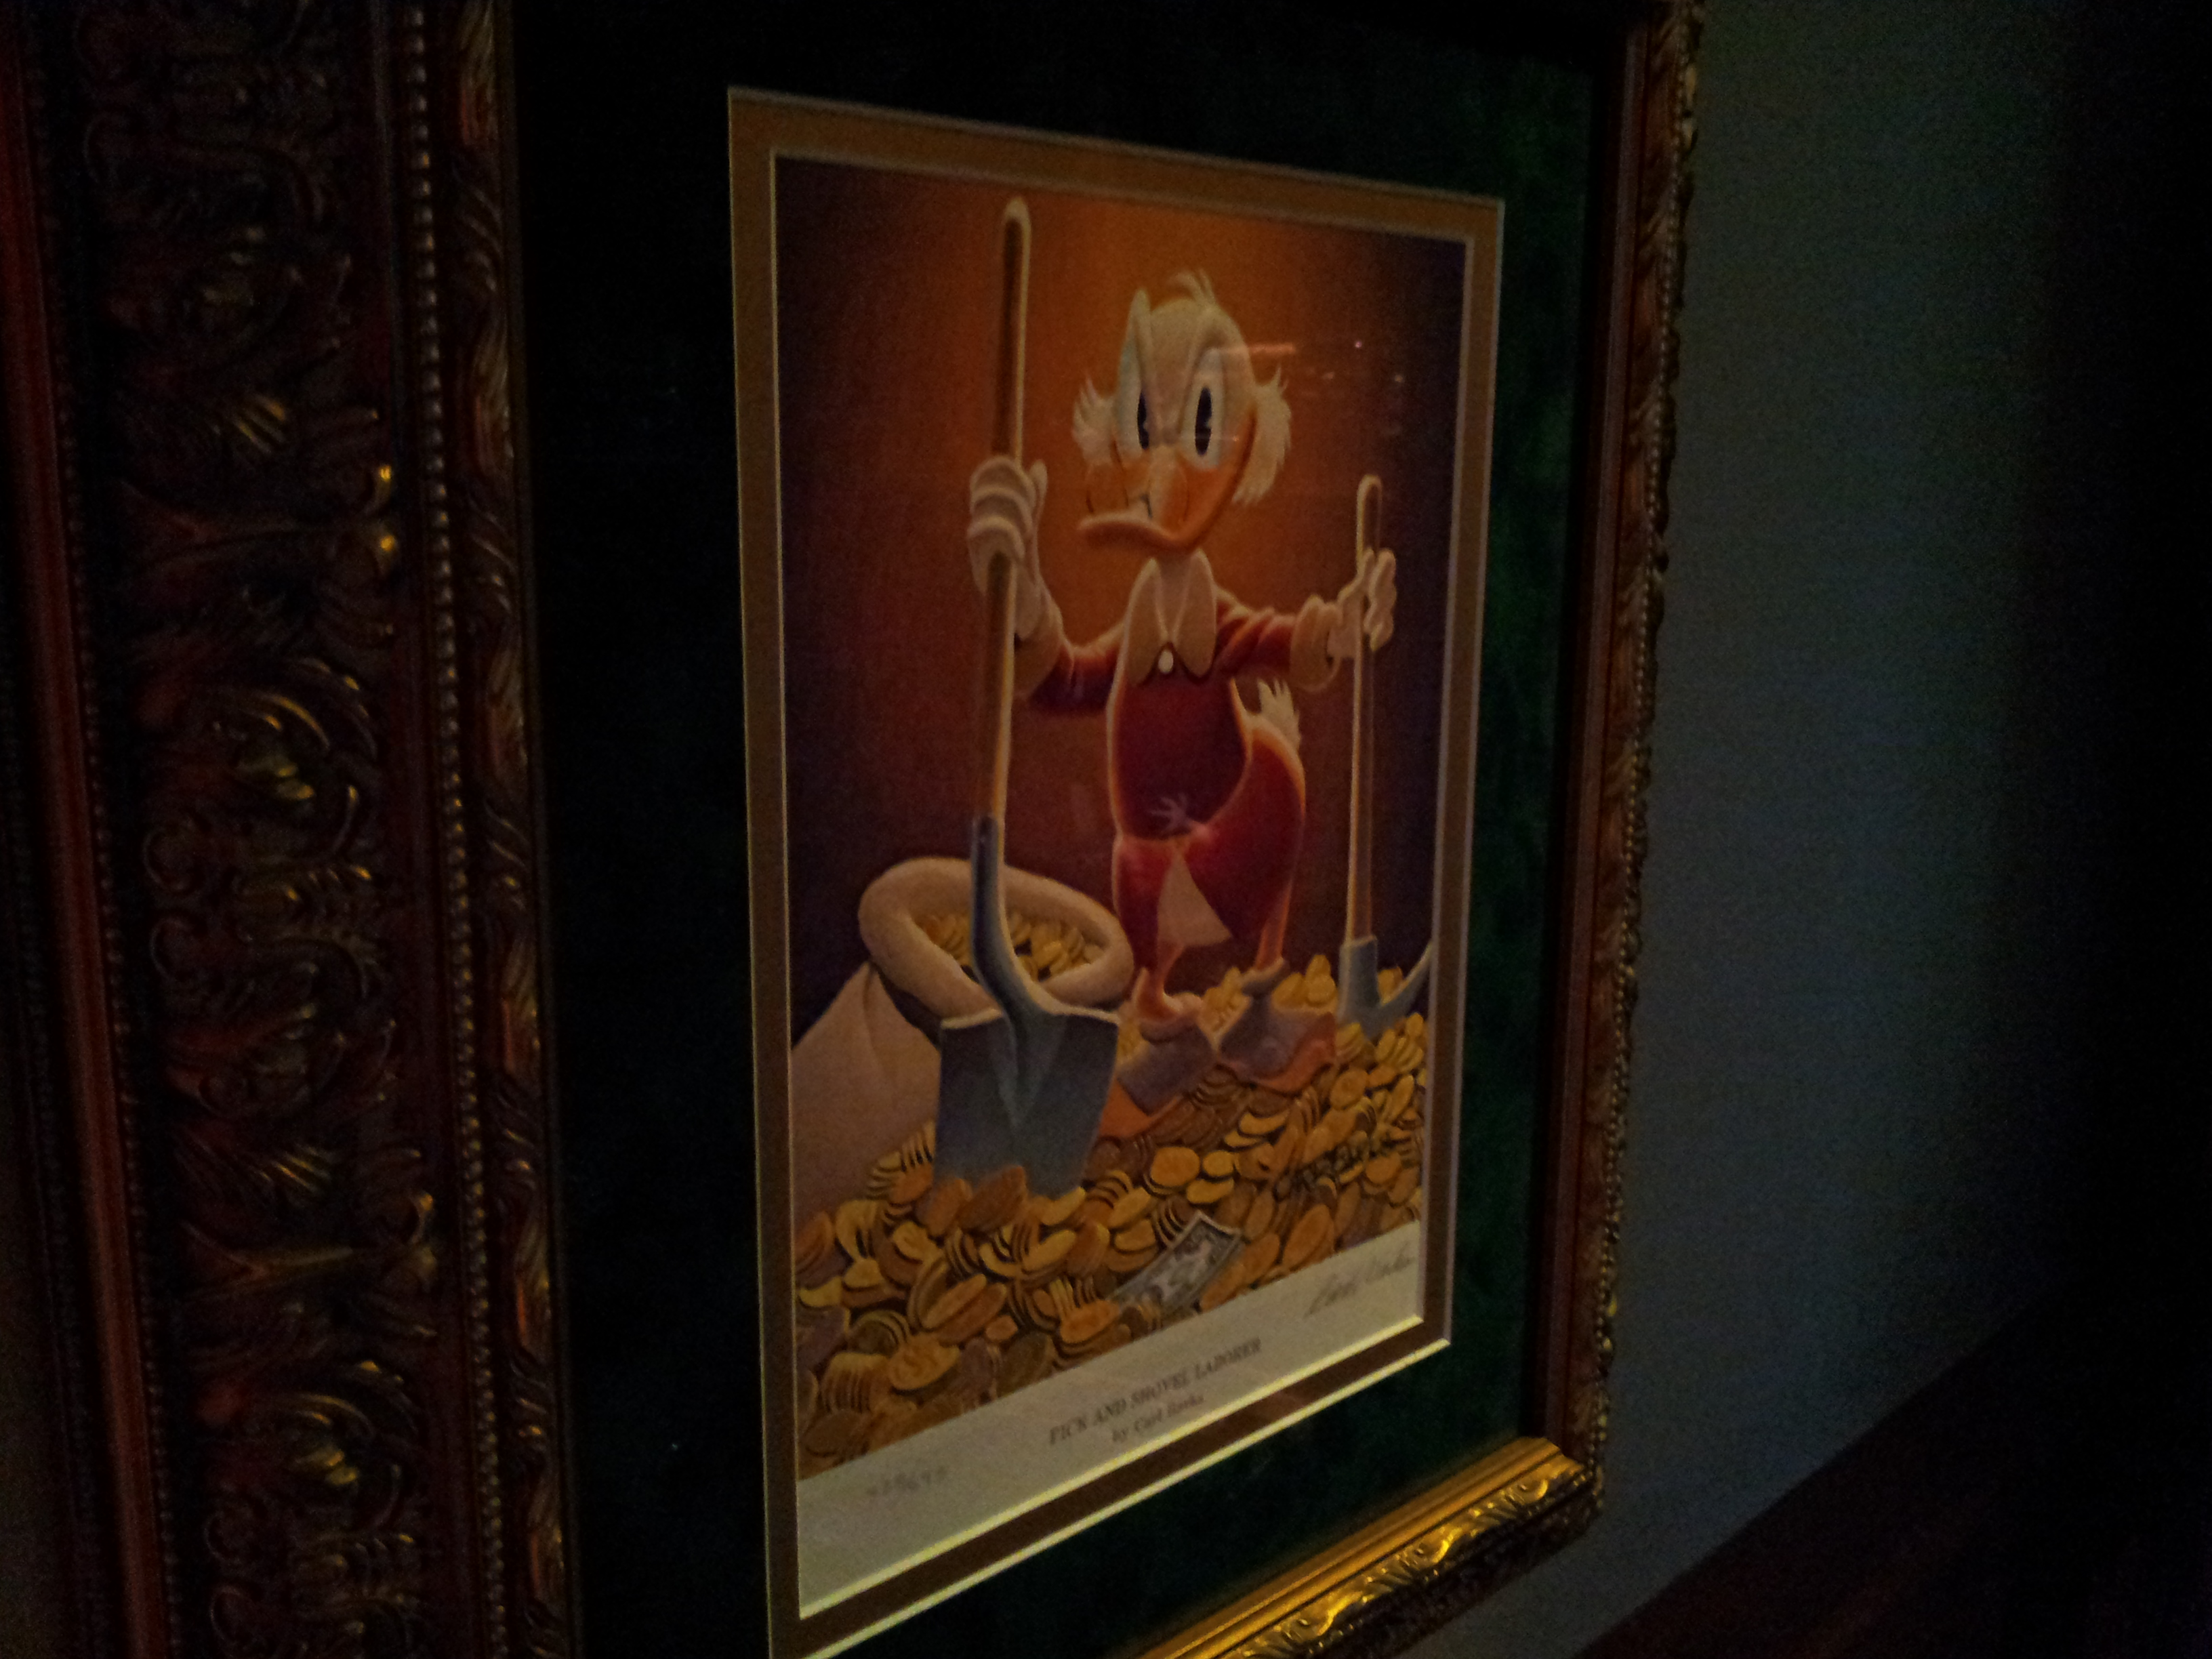 Some of the Carl Barks Scrooge McDuck Artwork